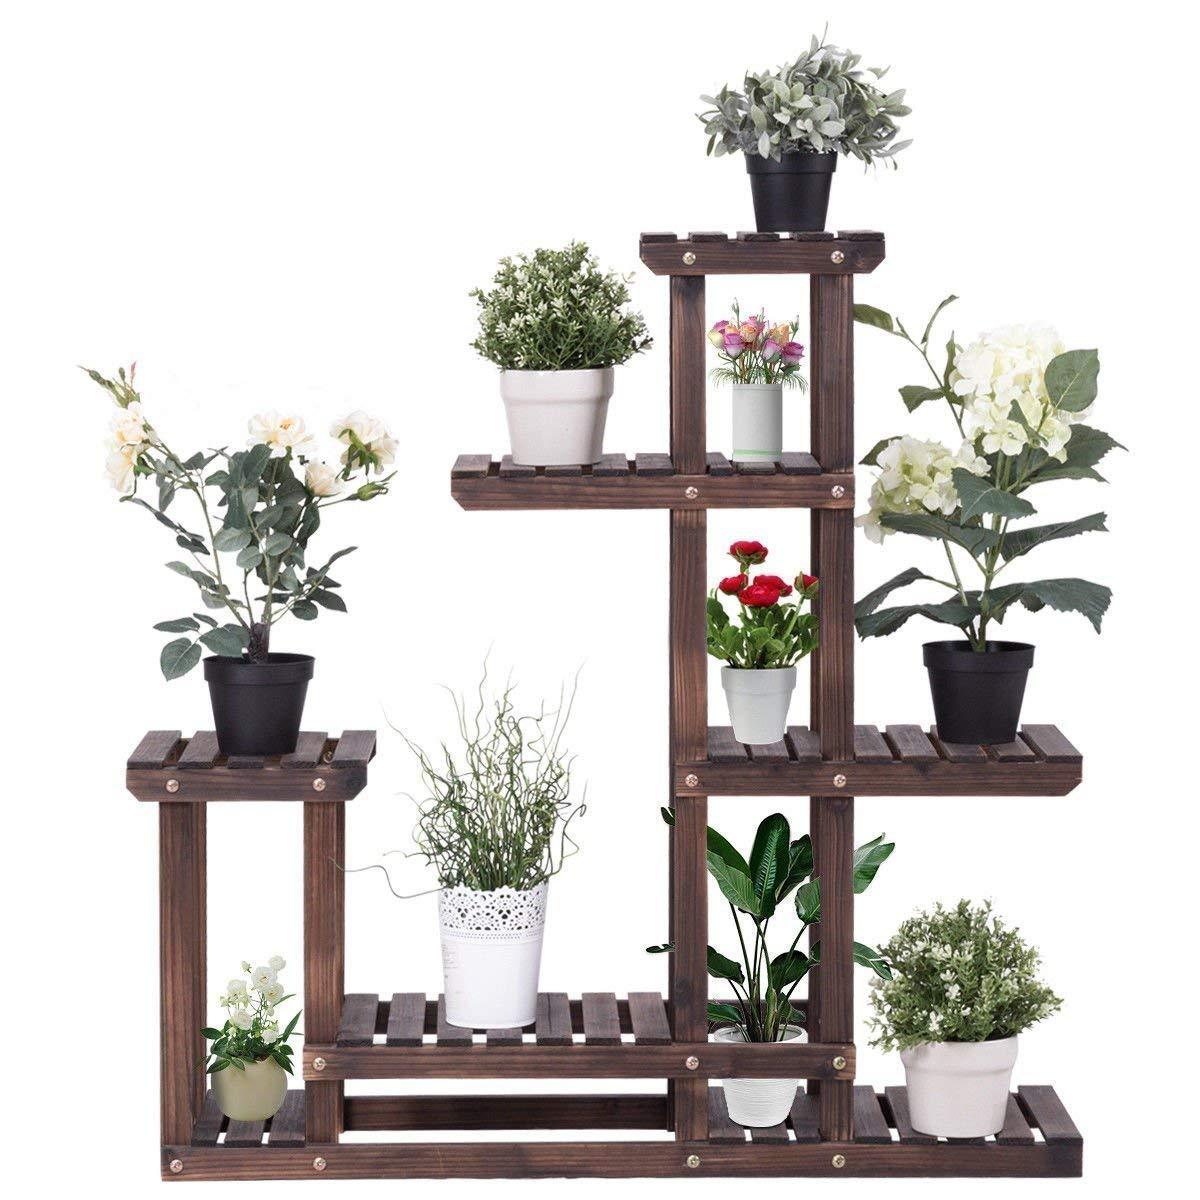 Giantex Flower Rack Plant Stand Multi Wood Shelves Bonsai Display Shelf Indoor Outdoor Yard Garden Patio Balcony Multifunctional Storage Rack Bookshelf W/Hollow-Out Rack (6 Wood Shelves 10 Pots) by Giantex